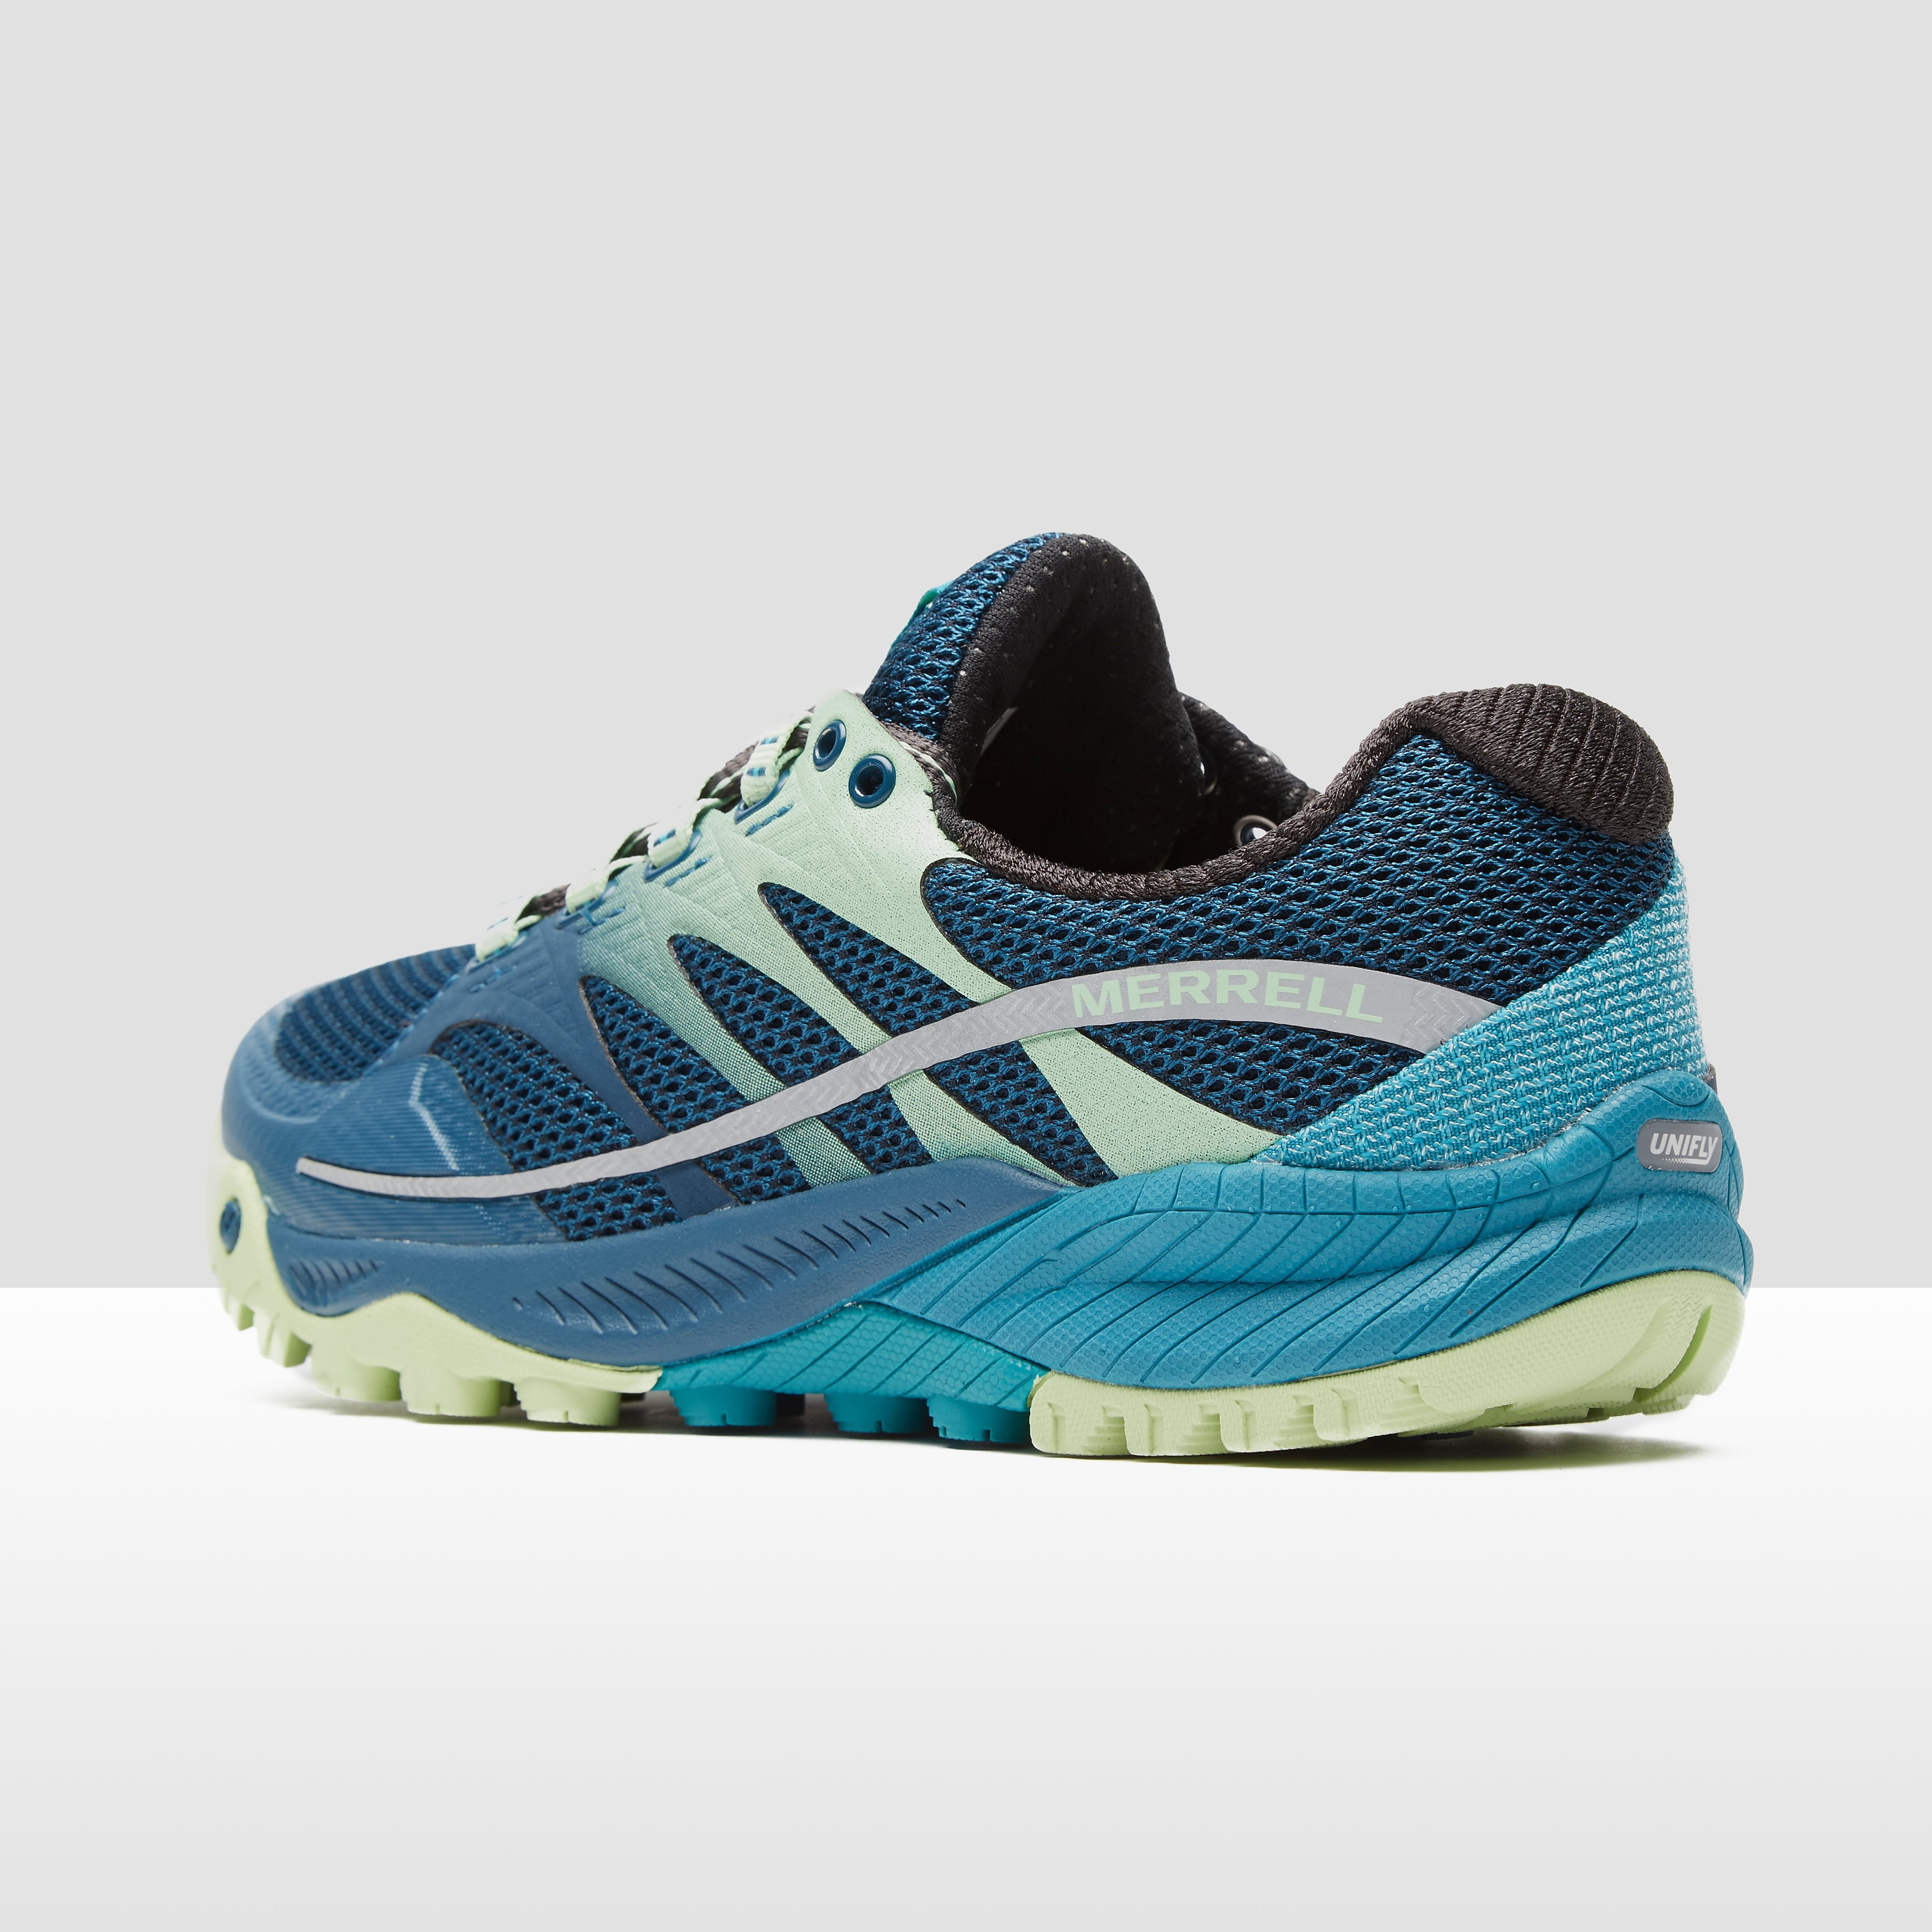 Merrell All Out Charge Women's Trail Running Shoes